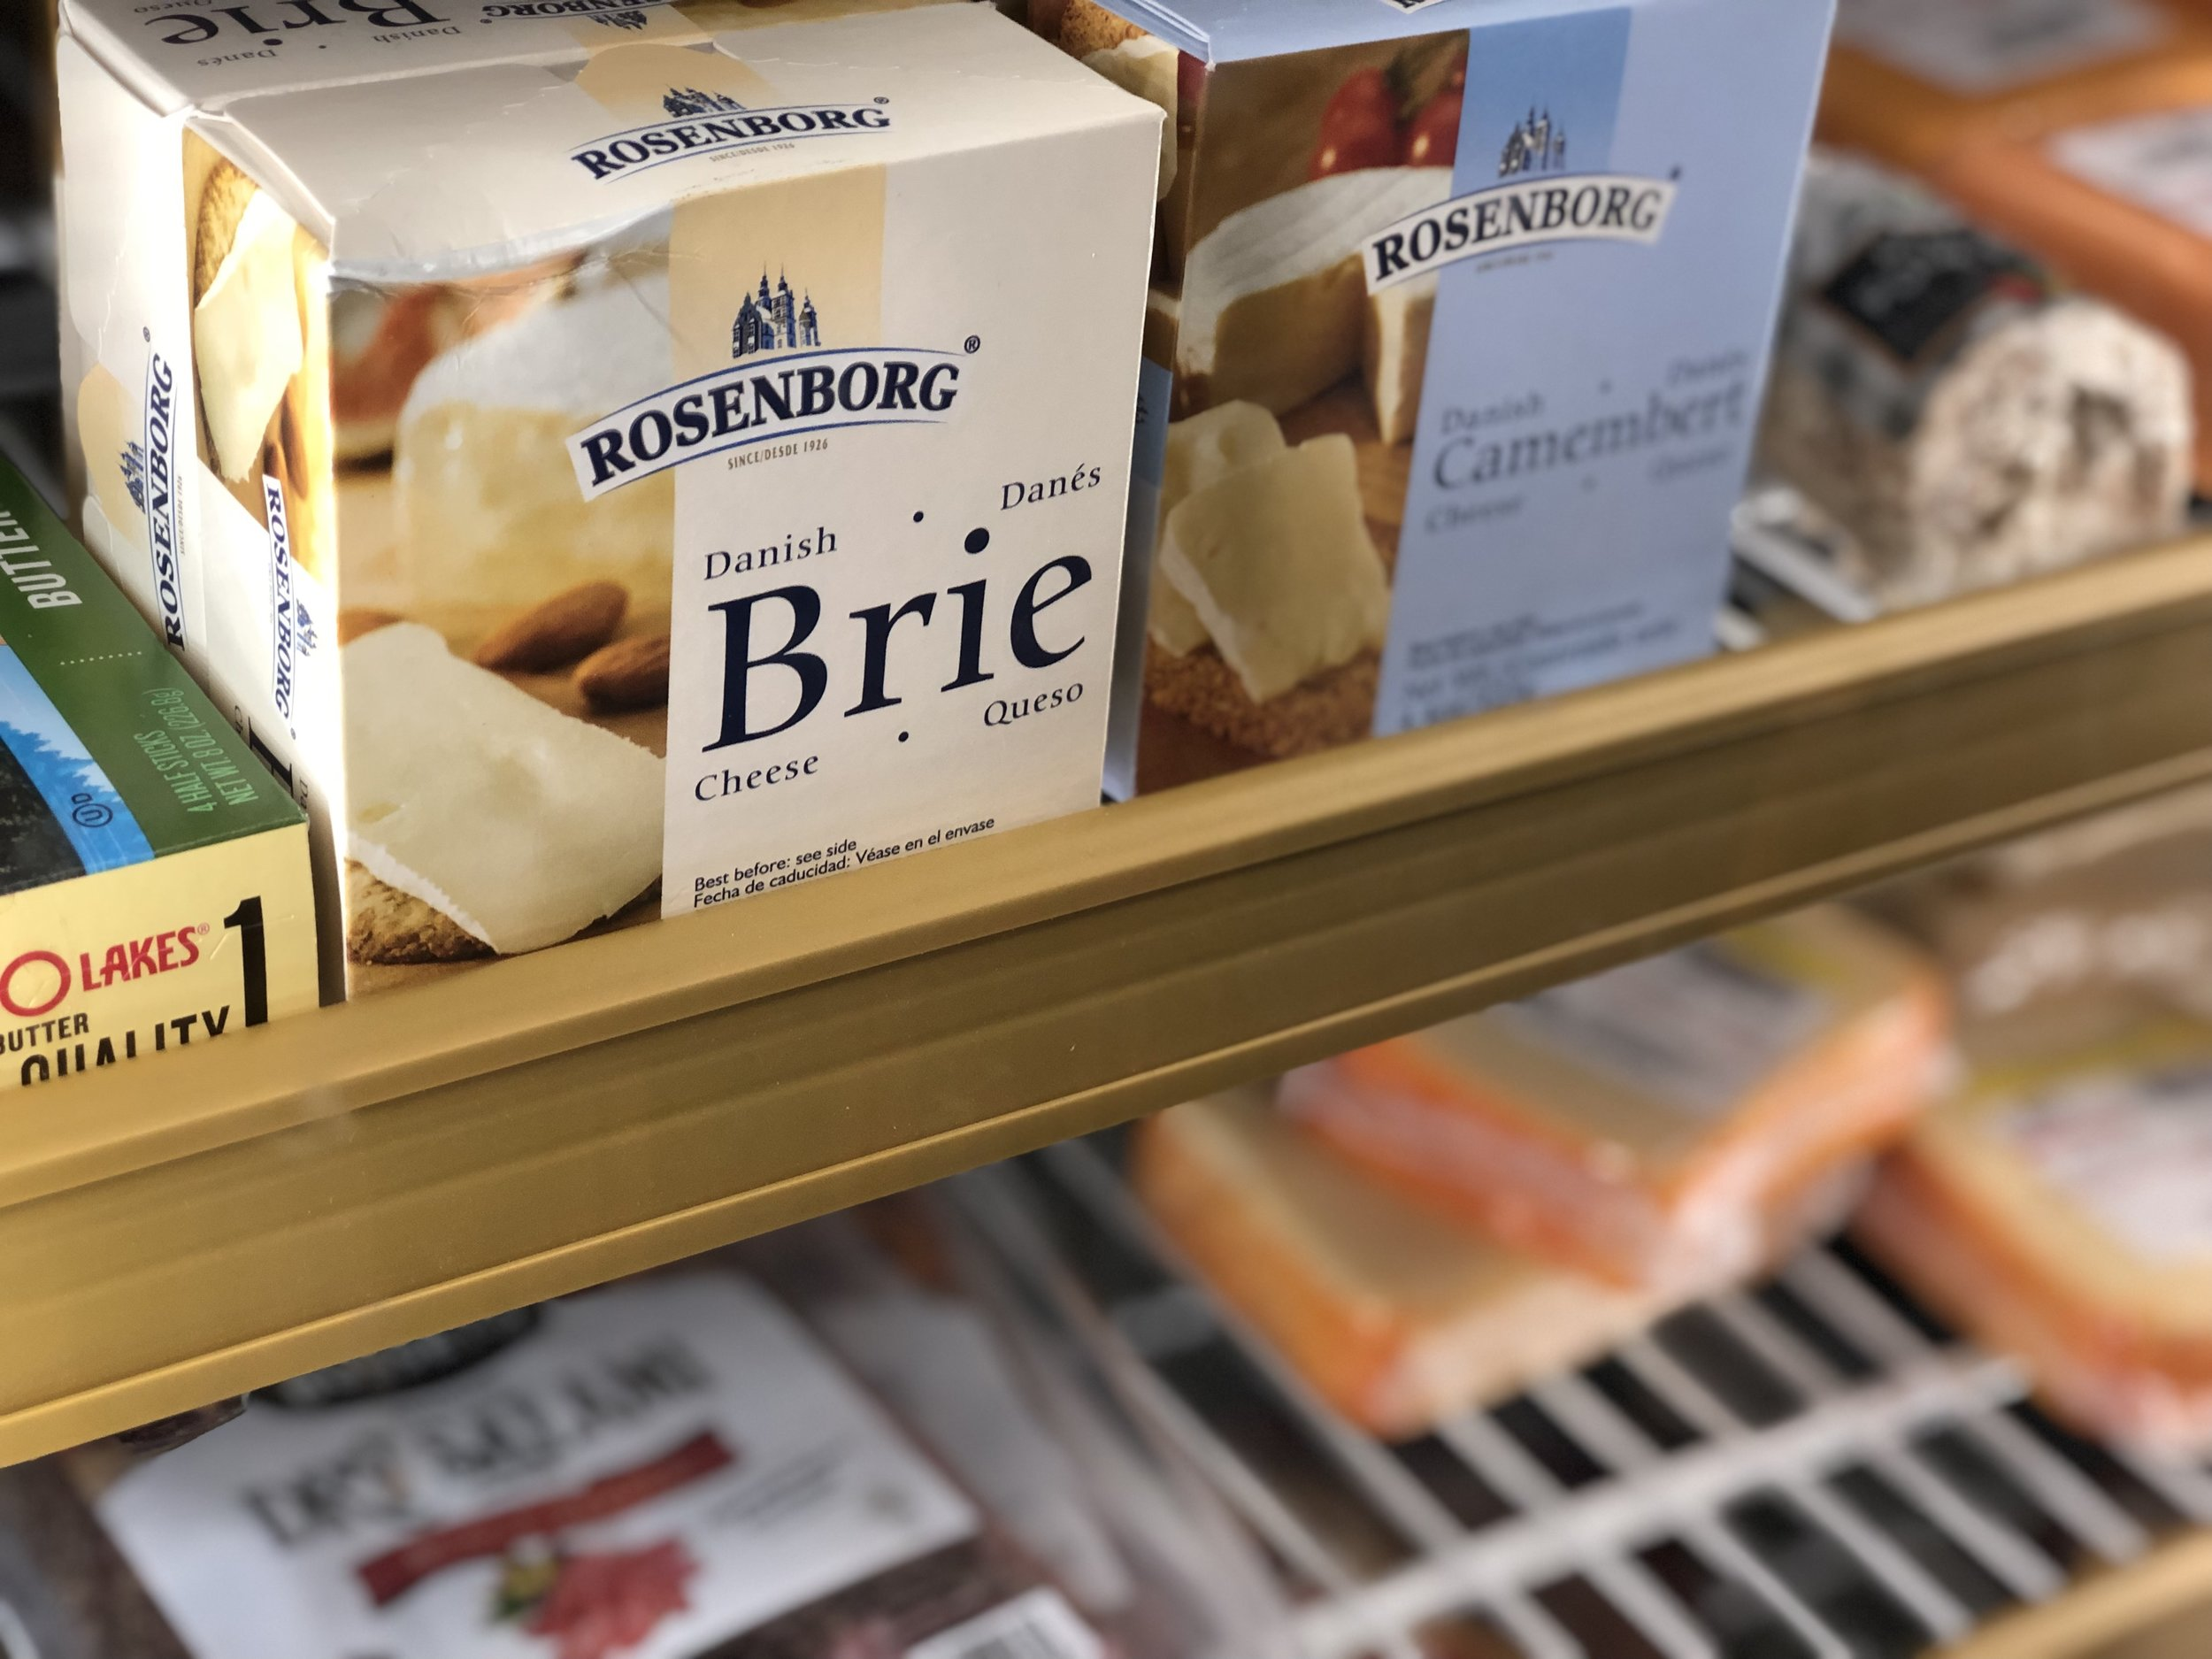 Cheddar may make it better, but Brie ups your cheese game.